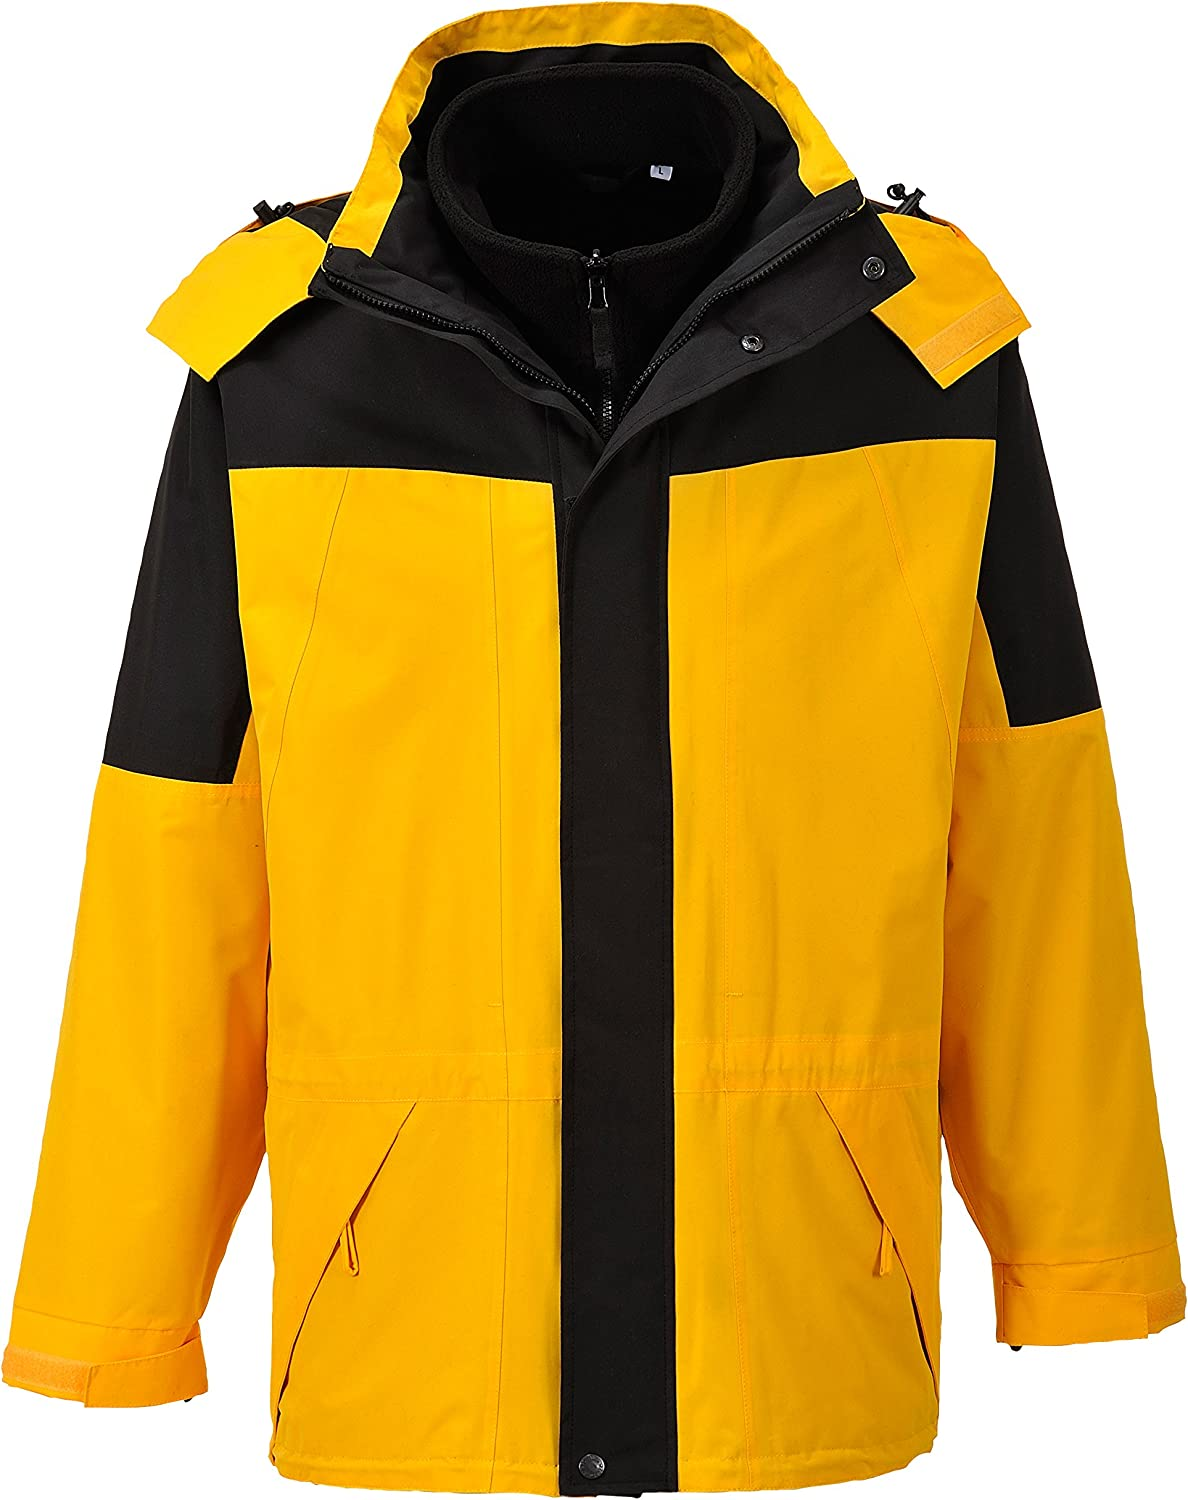 Size 3X-Large Regular Portwest S570YERXXXL Aviemore 3-in-1 Mens Jacket Yellow